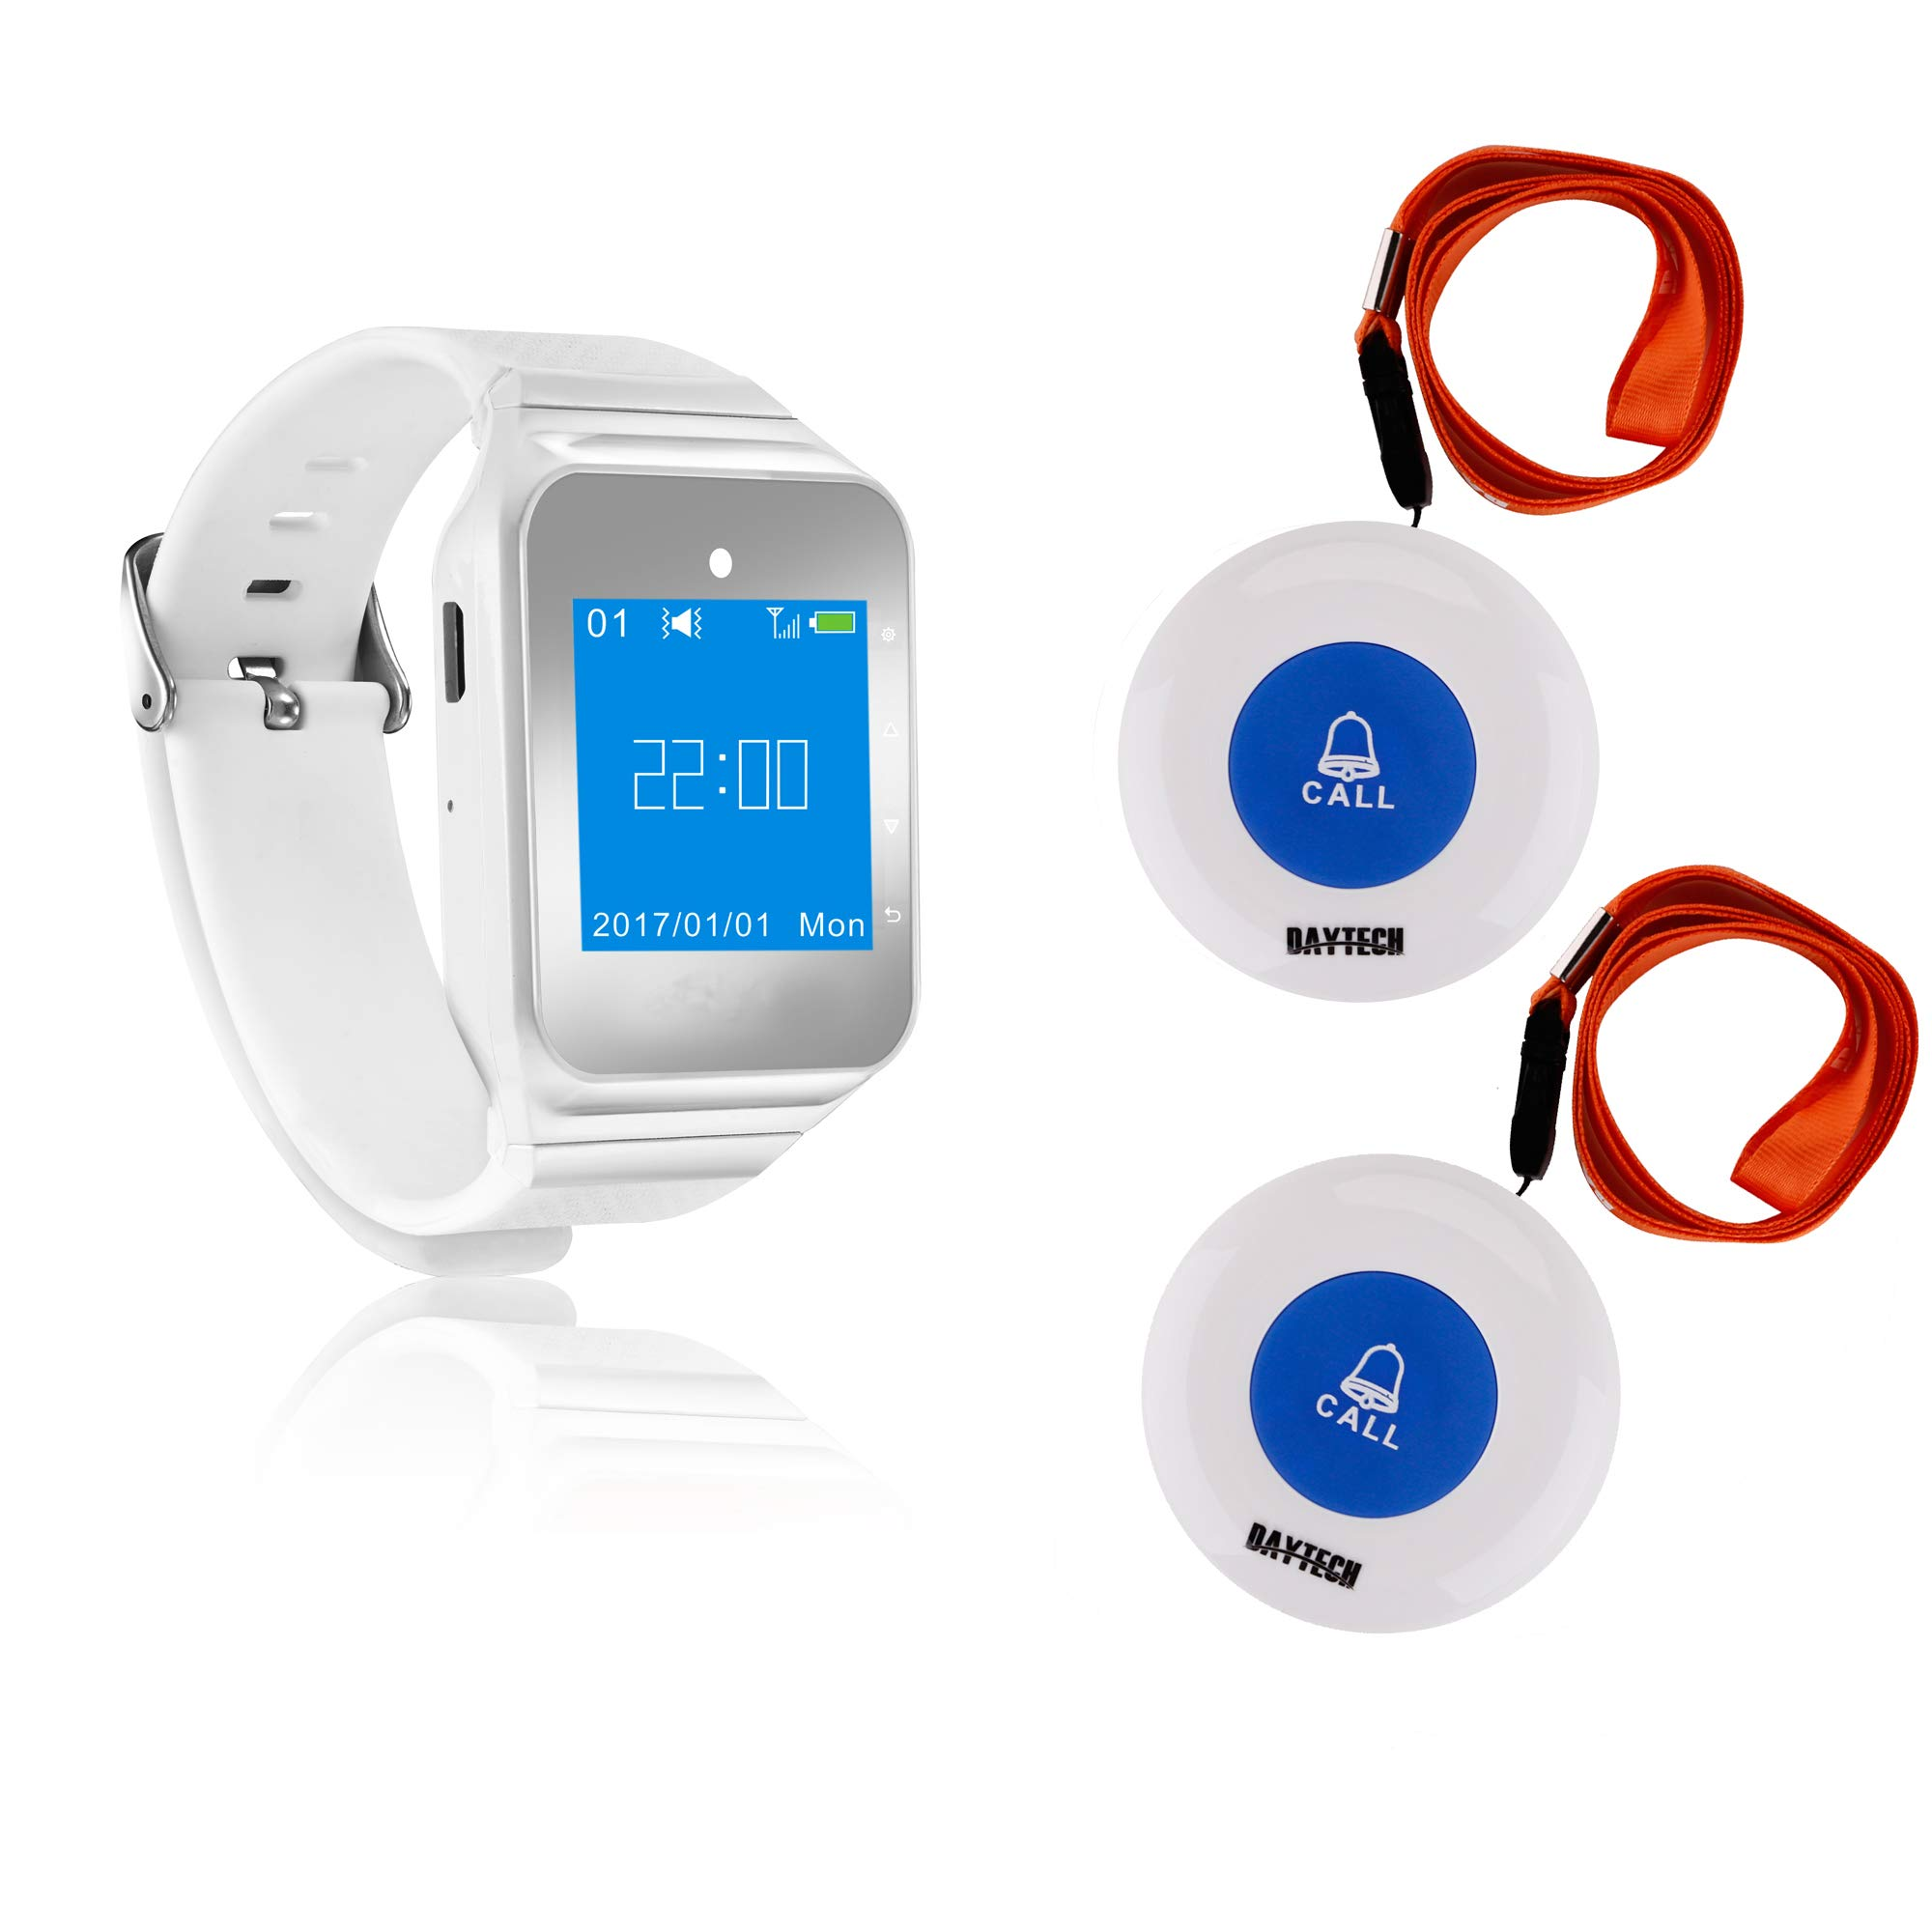 Wireless Caregiver Pager Vibration Softly Sound Alert System Nurse Call Help Buttons for Elderly Patient Disable at Home (1 Watch +2 Buttons)